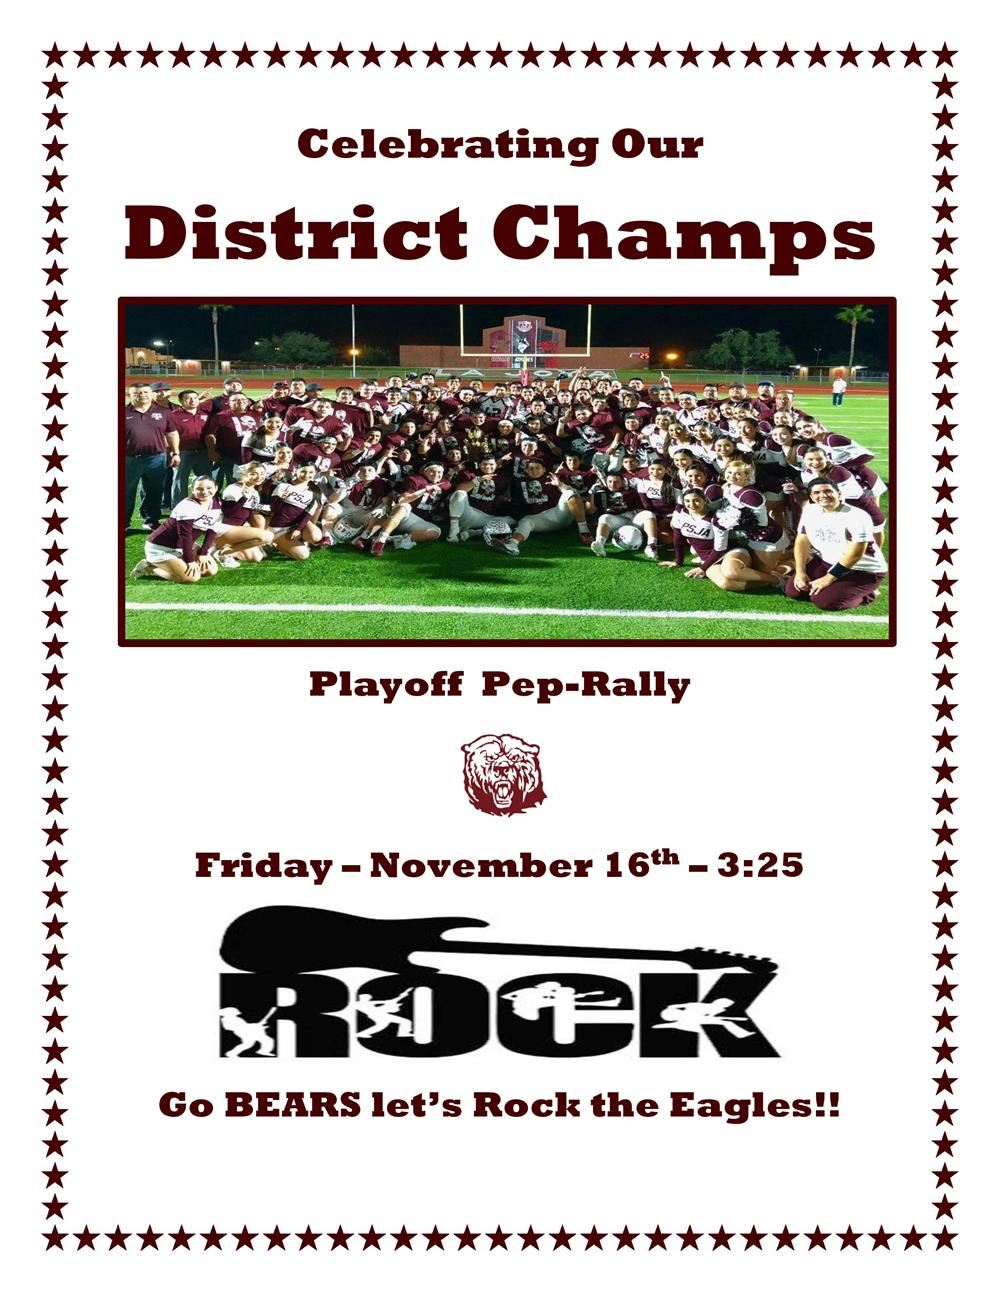 DISTRICT CHAMPS PEP-RALLY